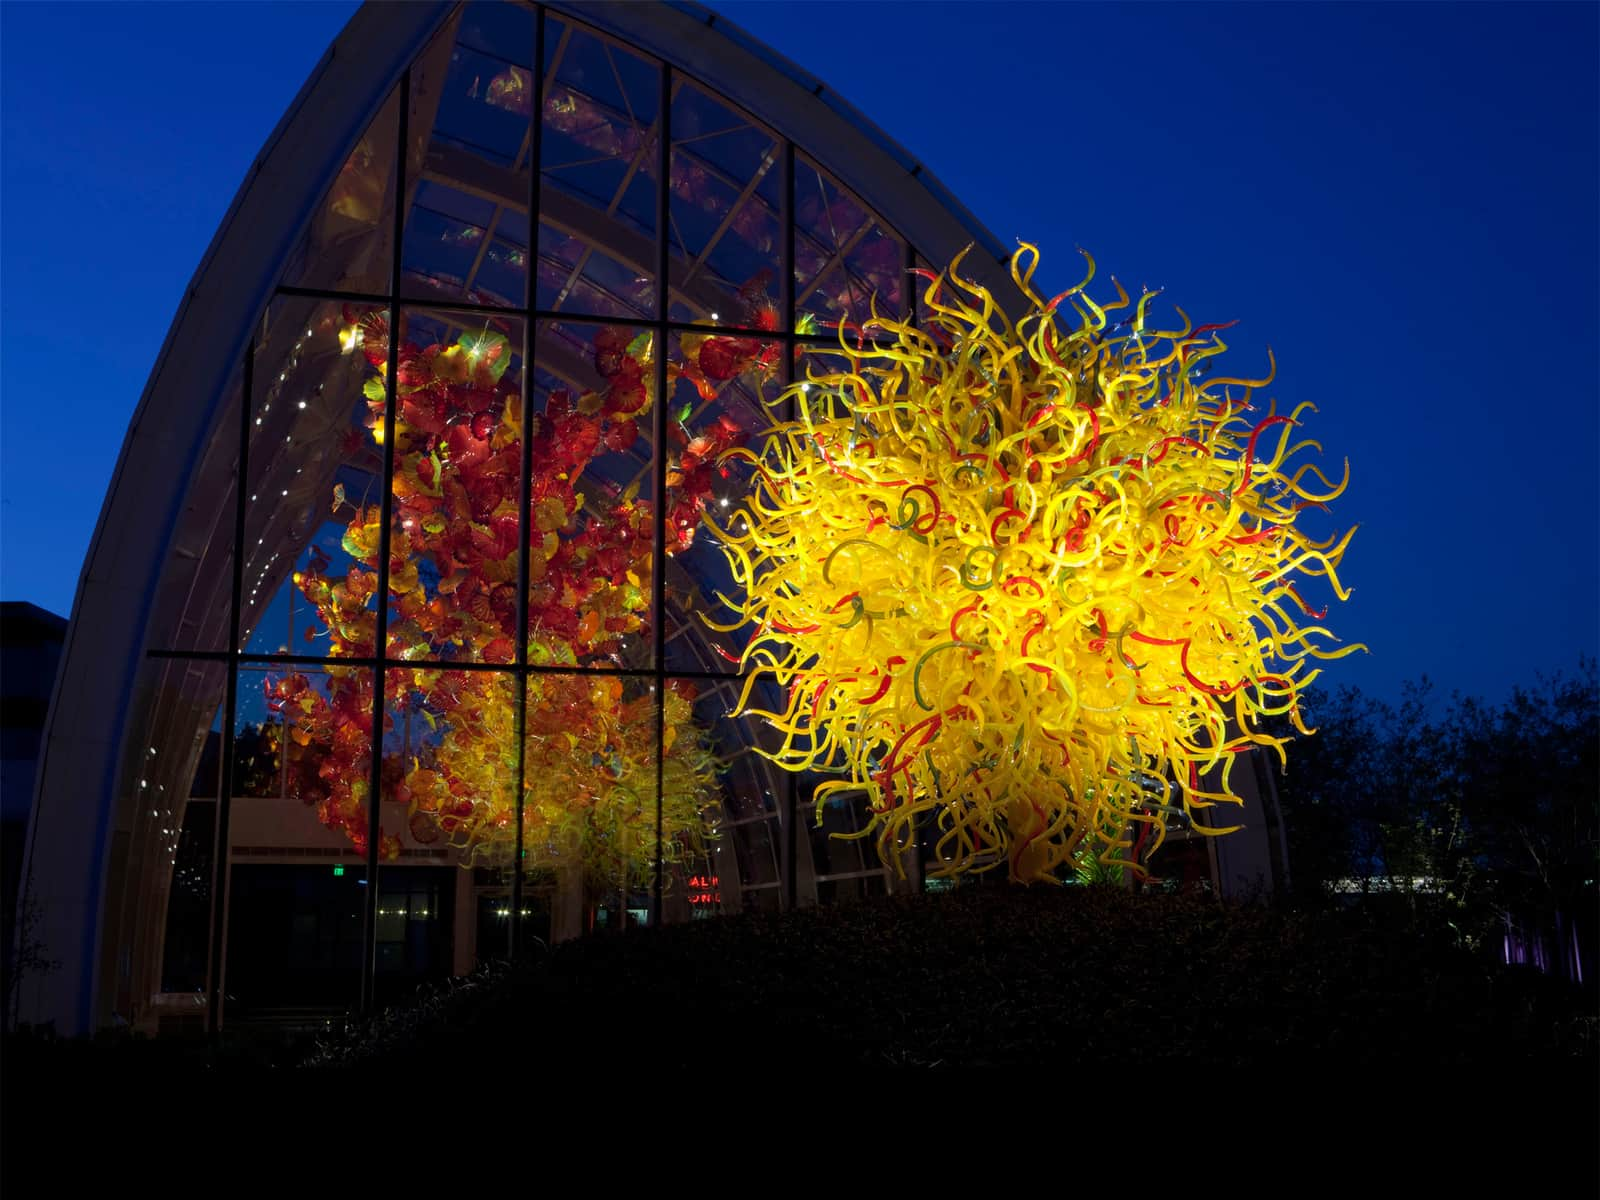 Dale Chihuly Presents Gorgeous Chihuly Chandeliers